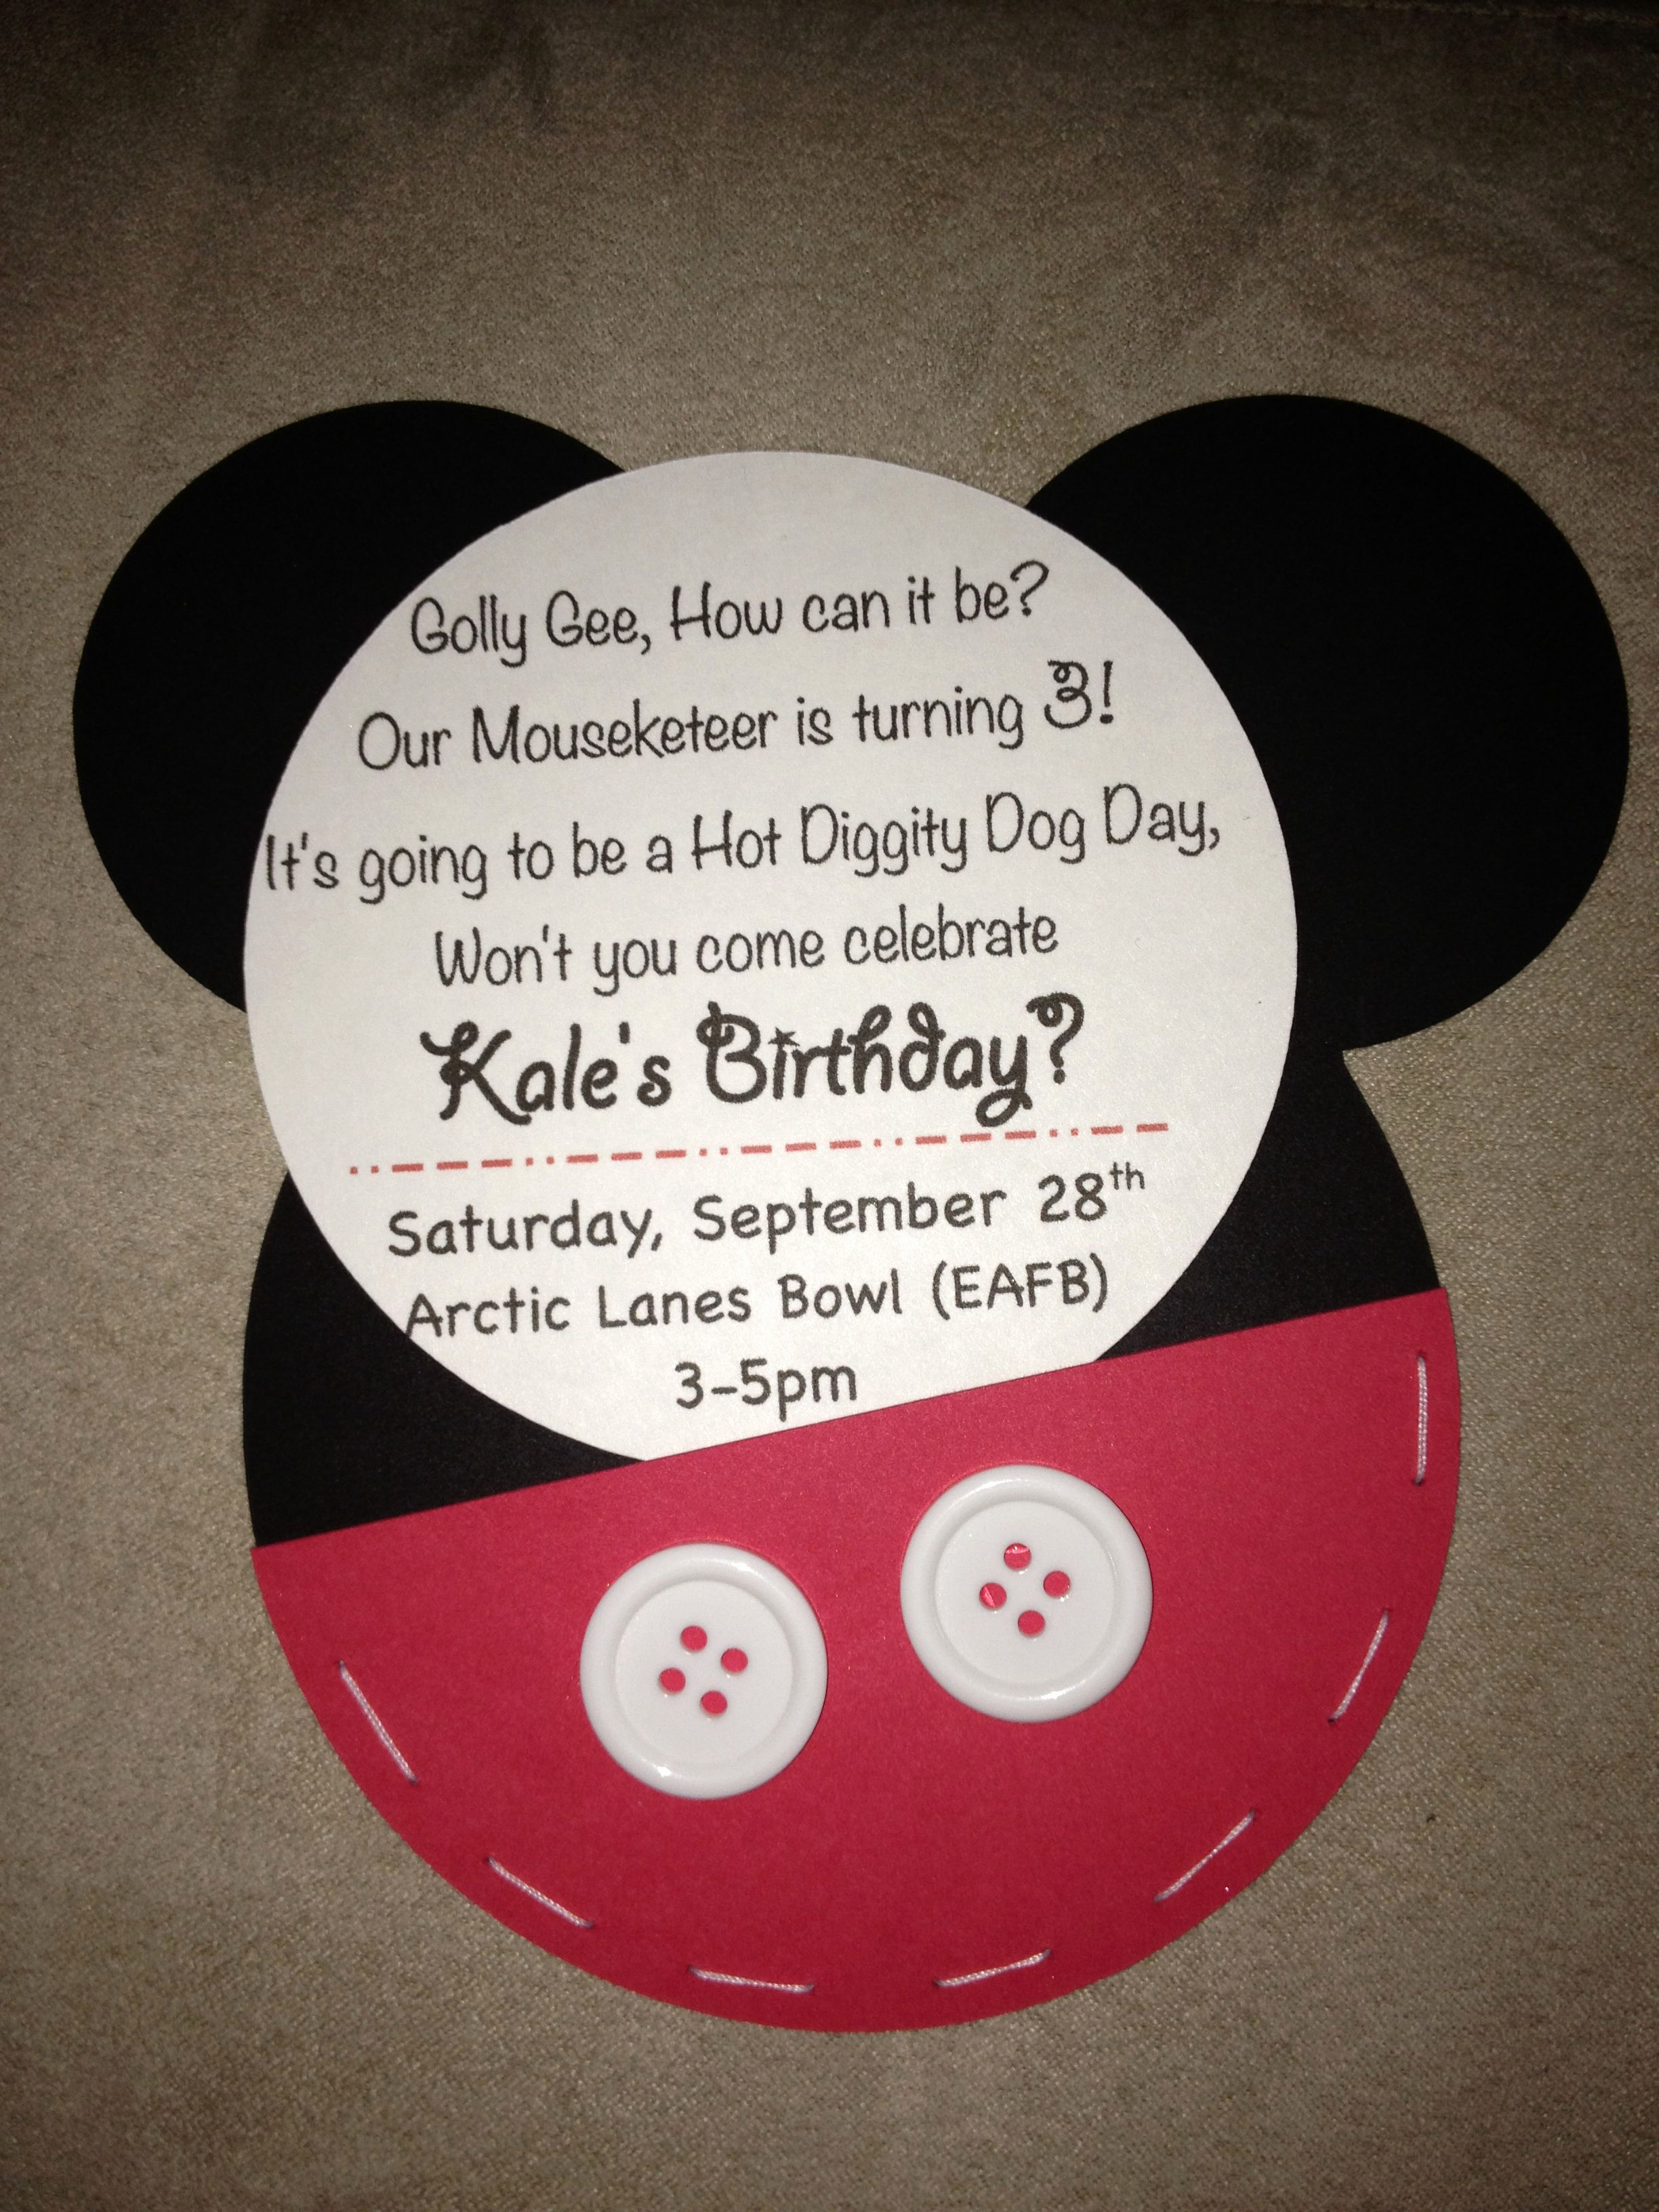 3rd Birthday Party Invitation Wording Elegant Mickey Mouse 3rd Birthday Invitations